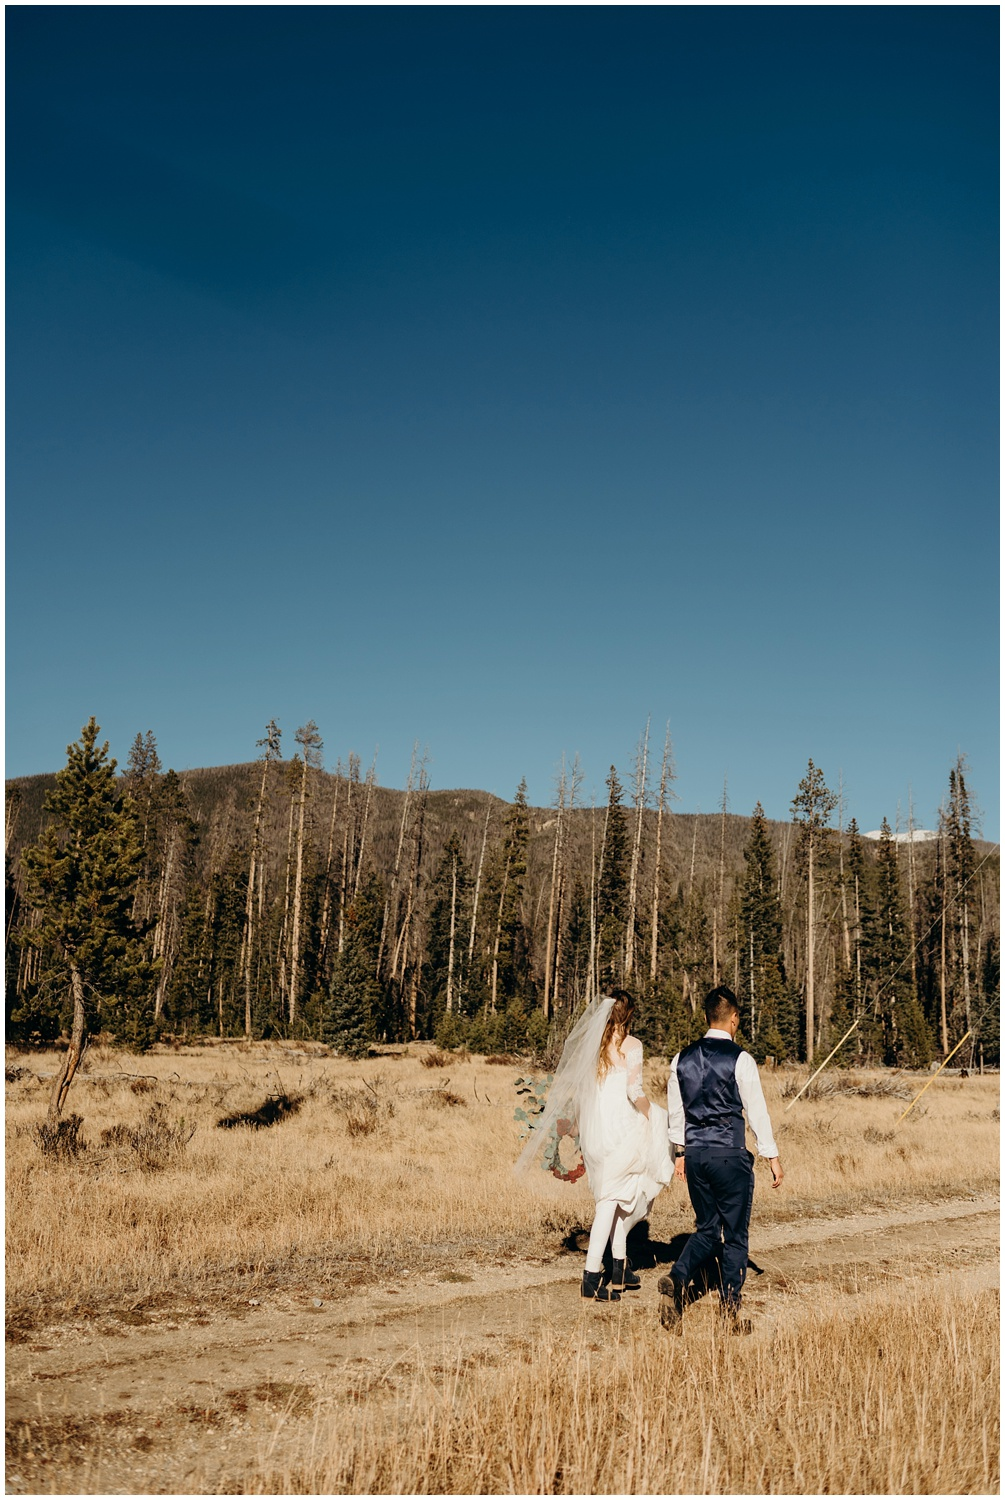 Intimate Wedding Ceremony at the Rocky Mountain National Park in Colorado.